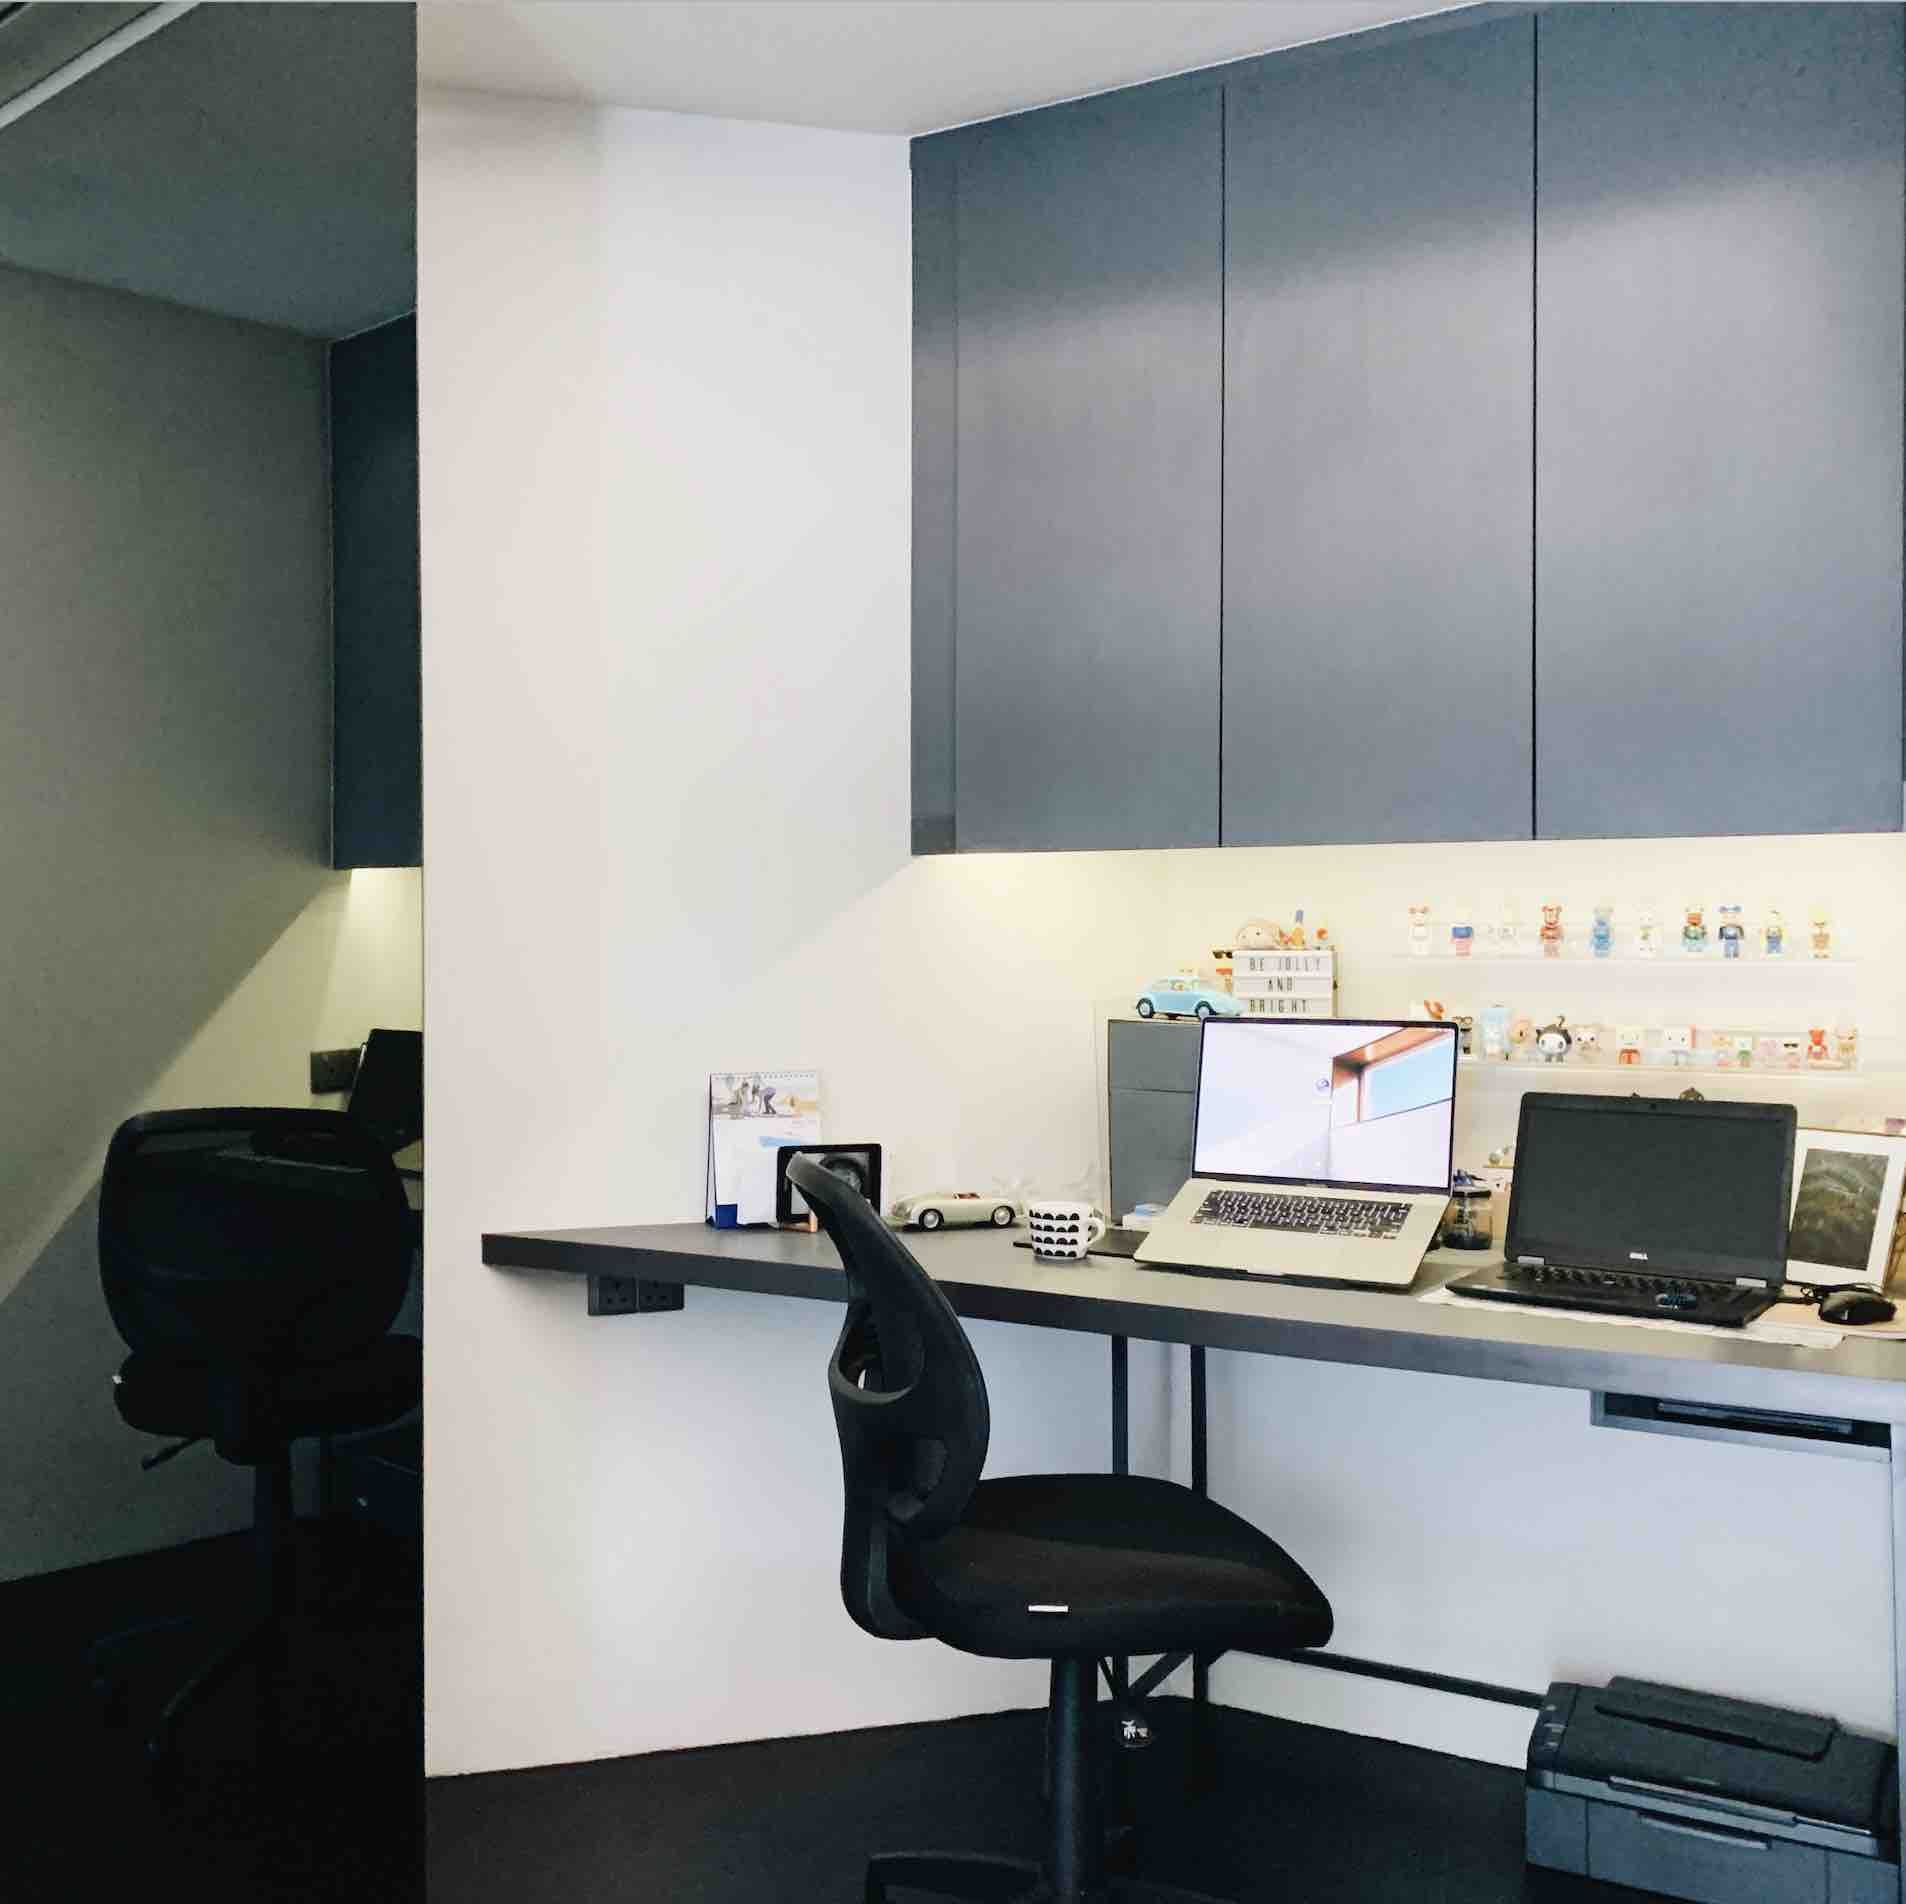 Home Office Ideas See The Workspaces Of Creatives In Singapore During The Circuit Breaker Period Tatler Singapore